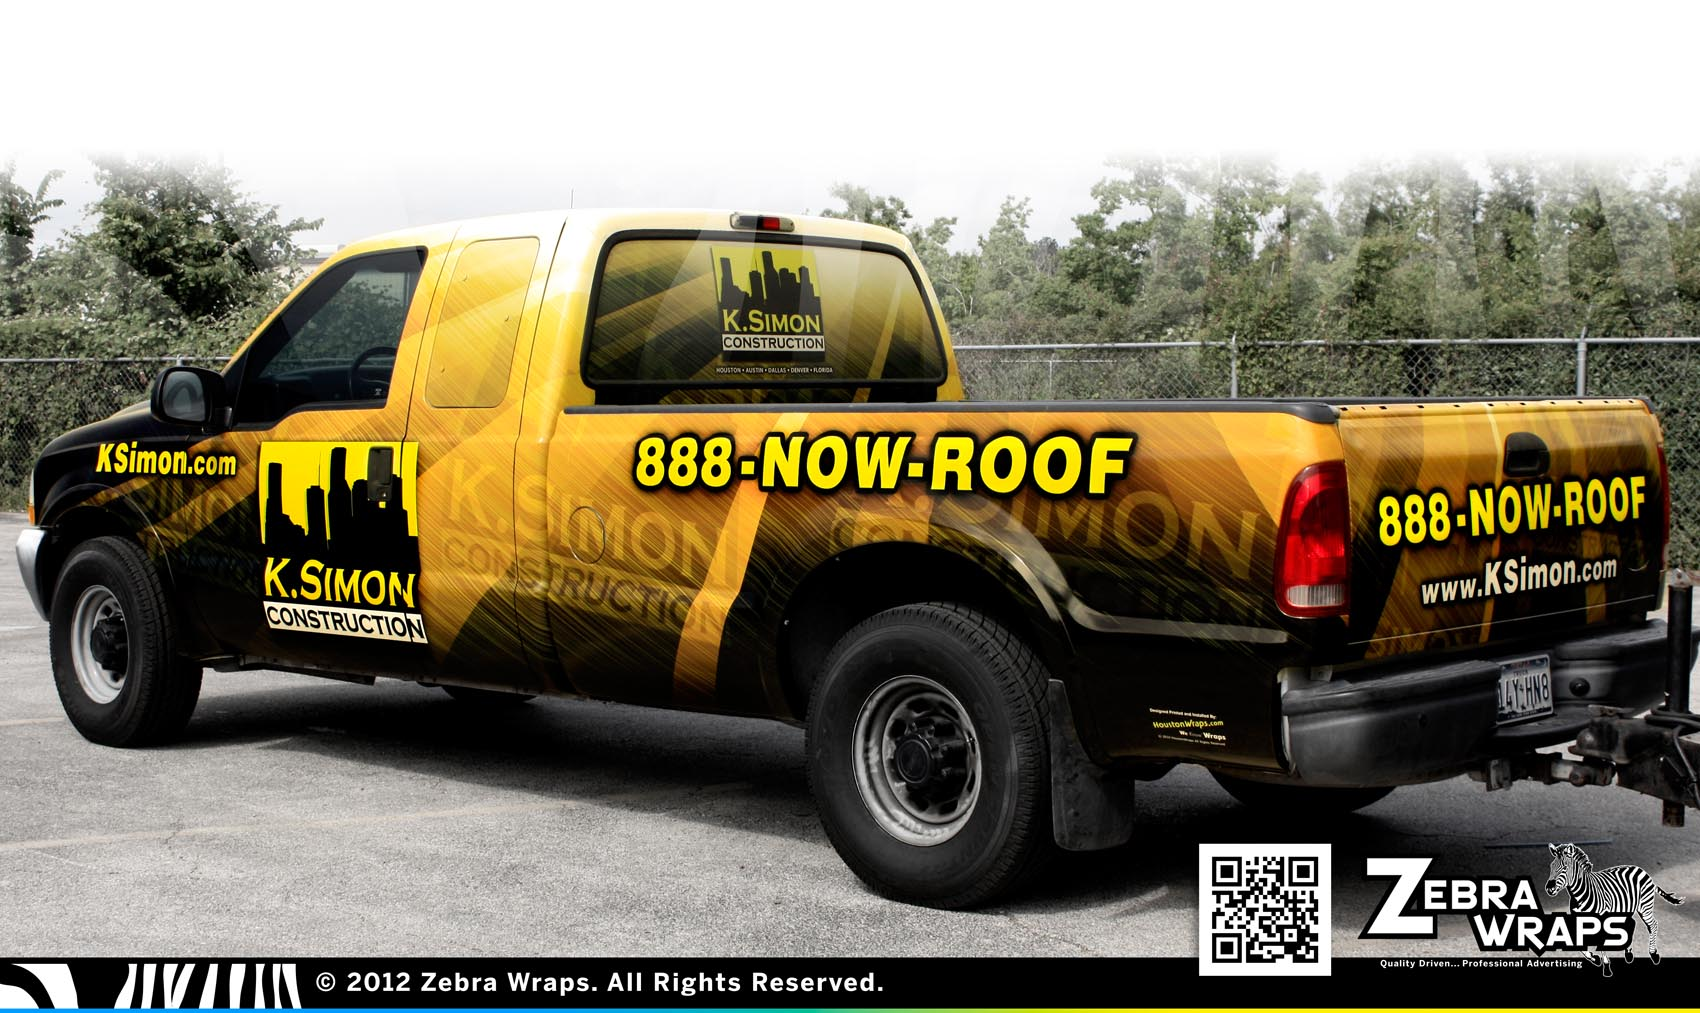 K Simon Jubile Construction Roofing Wrap Zebra Wrap